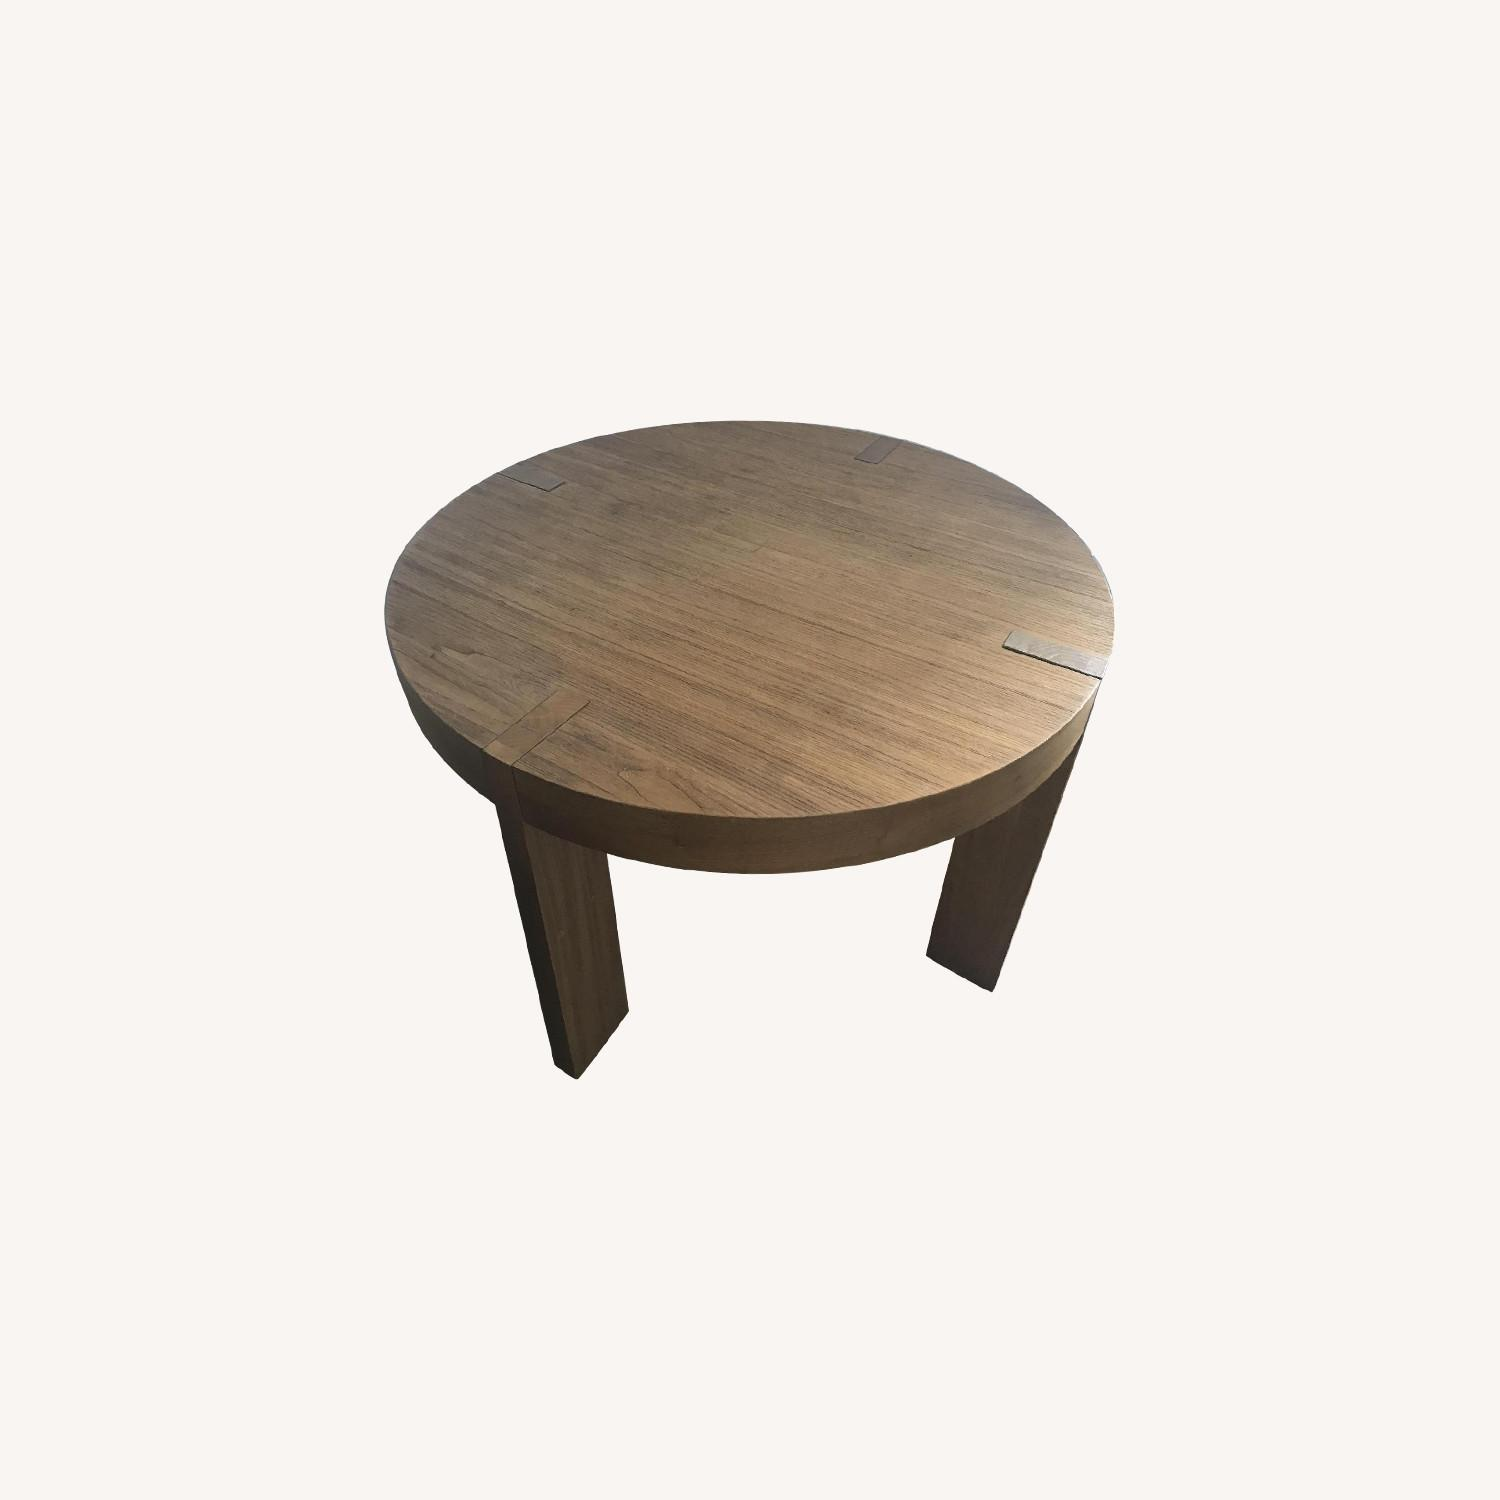 West Elm Rustic/Industrial Round Table - image-0